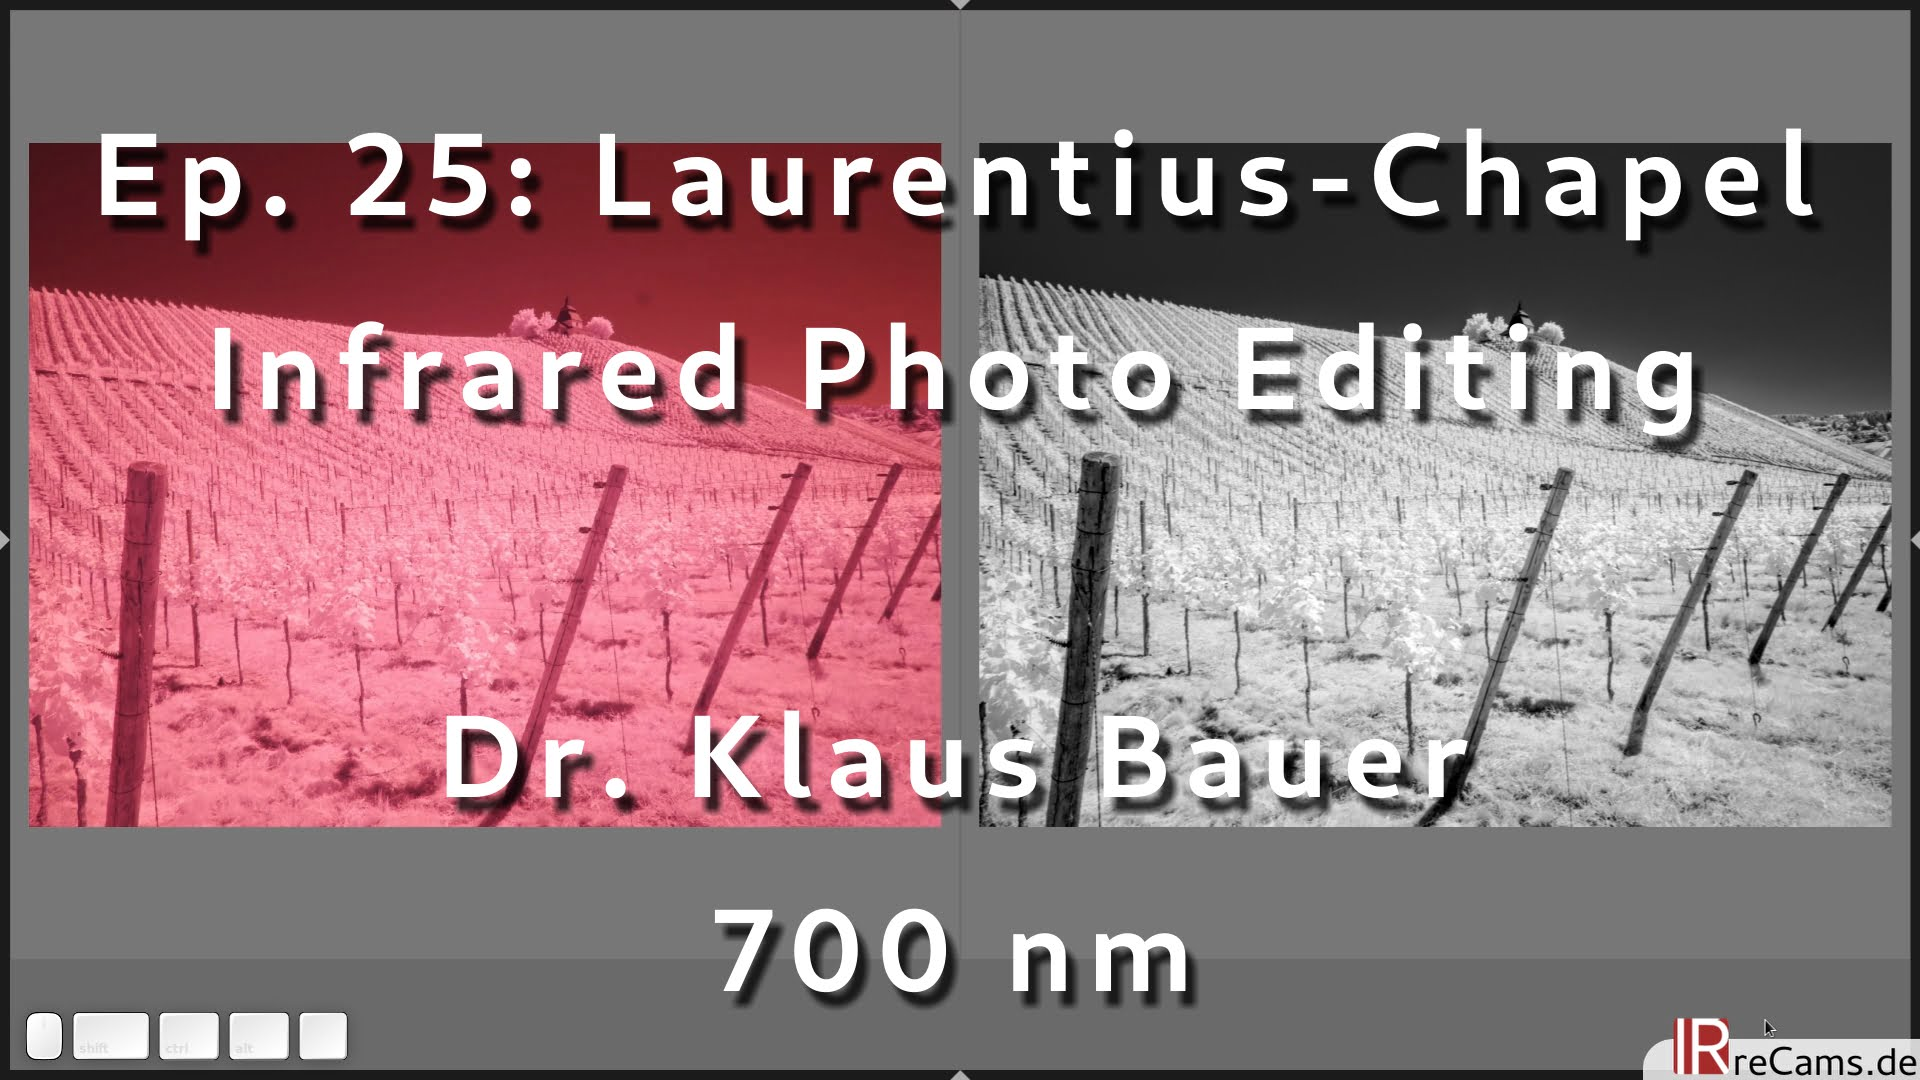 Ep. 25: Laurentius Chapel | Infrared Image Editing with darktable 3.4